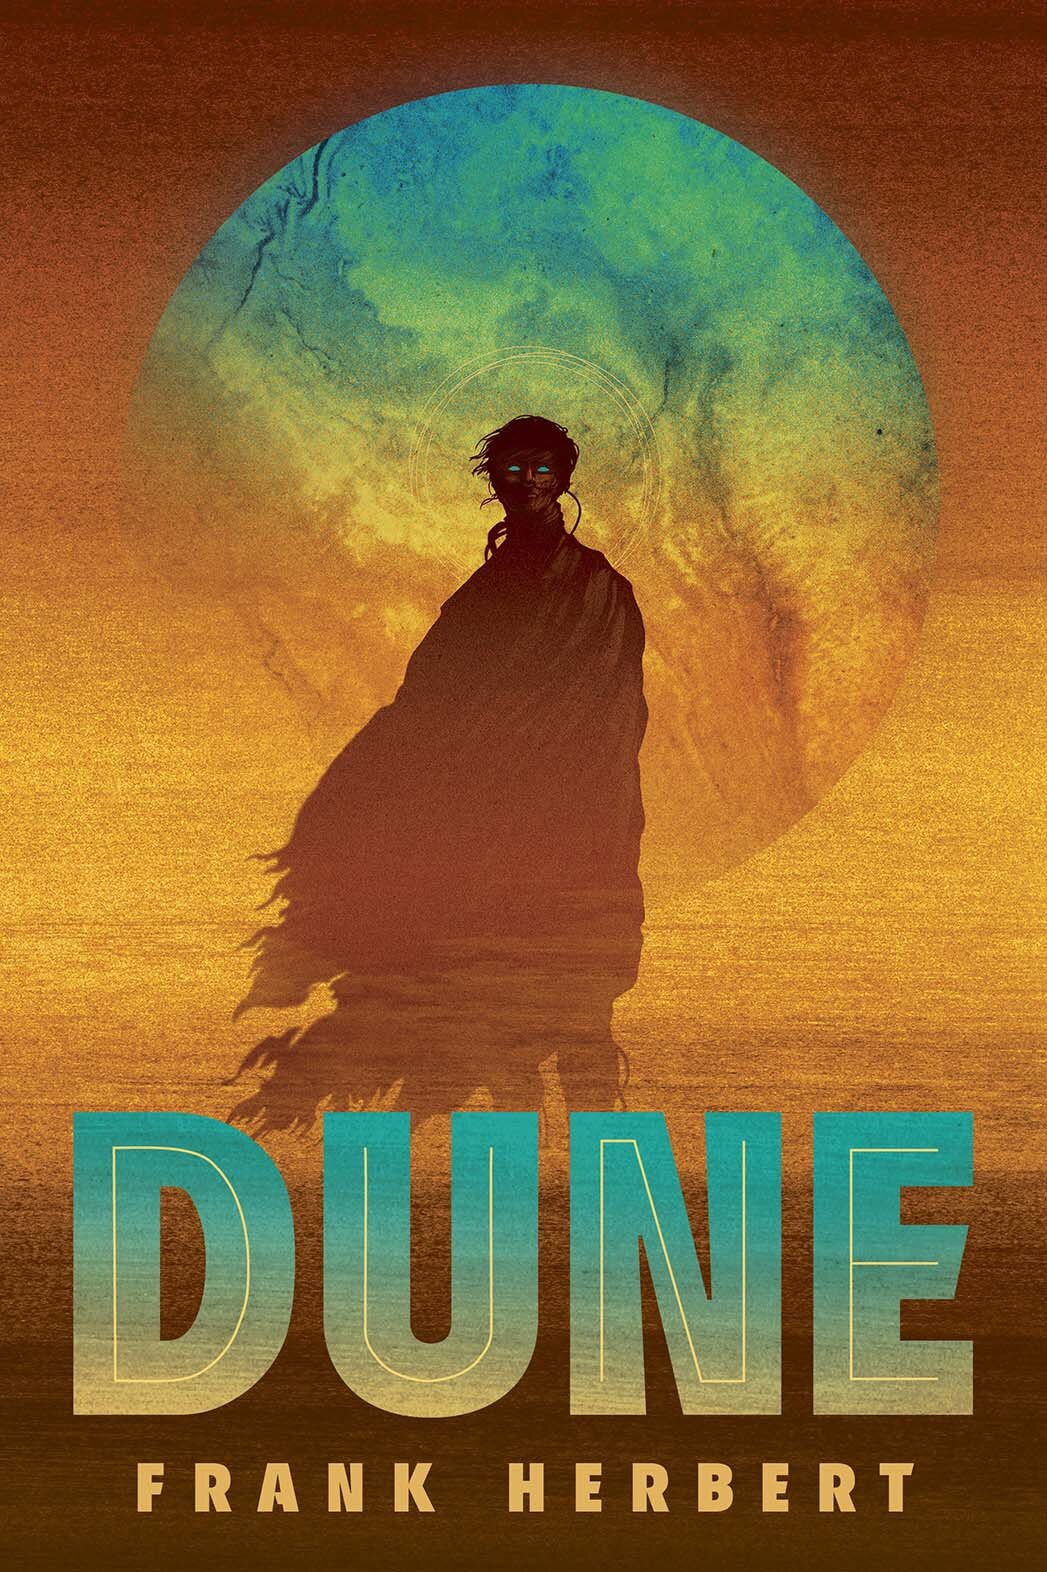 28) Dune - Often hailed as the best sci-fi novel of all time, Frank Herbert's Dune certainly lives up to its reputation. Dune follows the life of Paul Atreides on the barren desert planet Arrakis, a priceless world due to its production of a drug called spice. The novel follows Paul and his transformation into the Kwisatz Haderach, a prophet of sorts initially received by a race of indigenous people known as the Fremen. Dune is second to none in world building, and Herbert develops the spiritual mythos of Arrakis and the universe's different cultures and groups with unmatched artistry. Dune beautifully incorporates a litany of themes, from environmentalism and gender dynamics to the decline of empires, but at its heart is about the danger of heroes and the terrible consequences of fate.